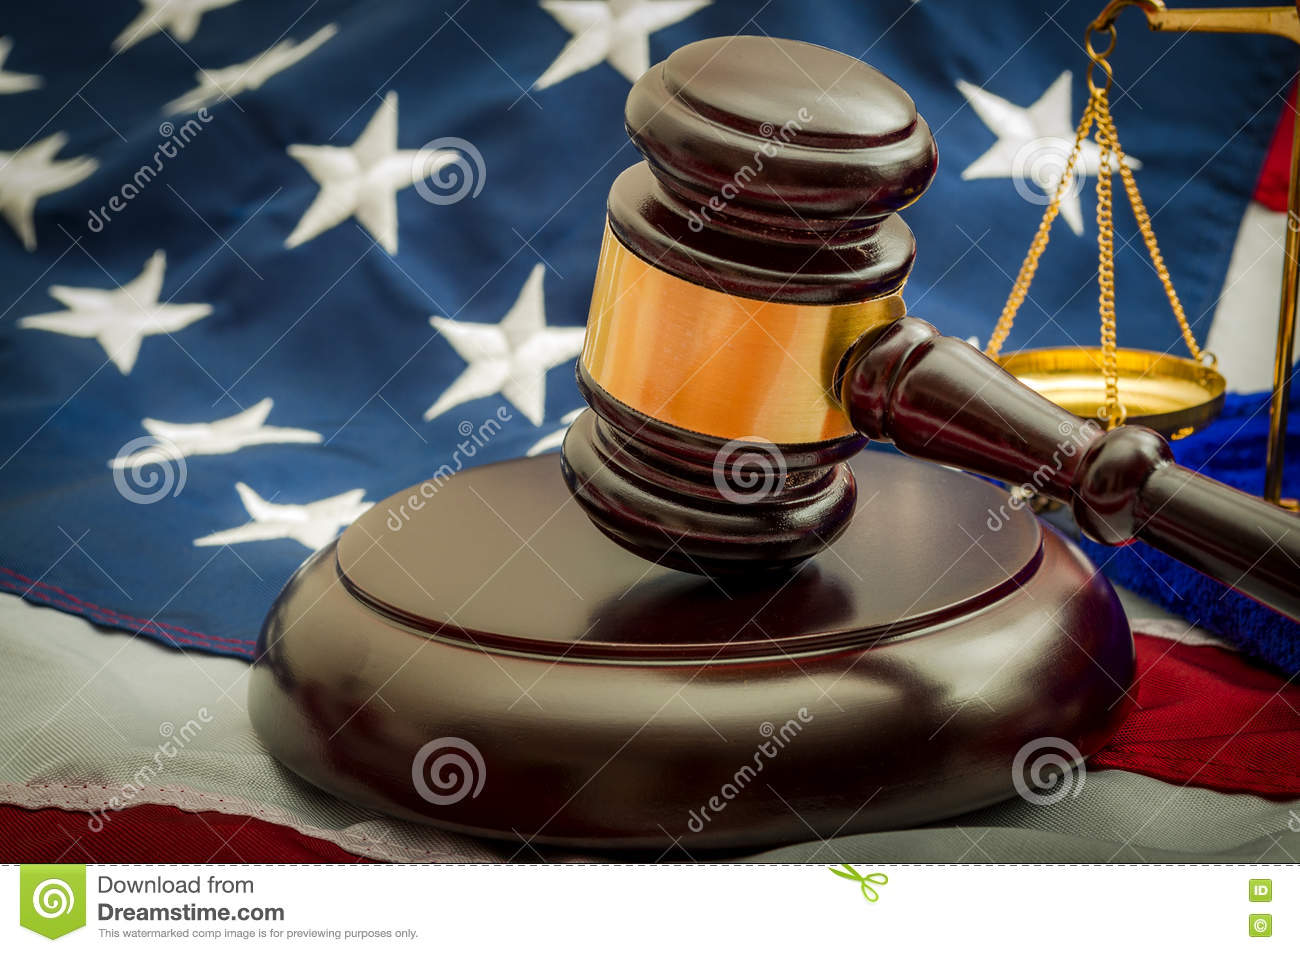 American justice system, the judicial